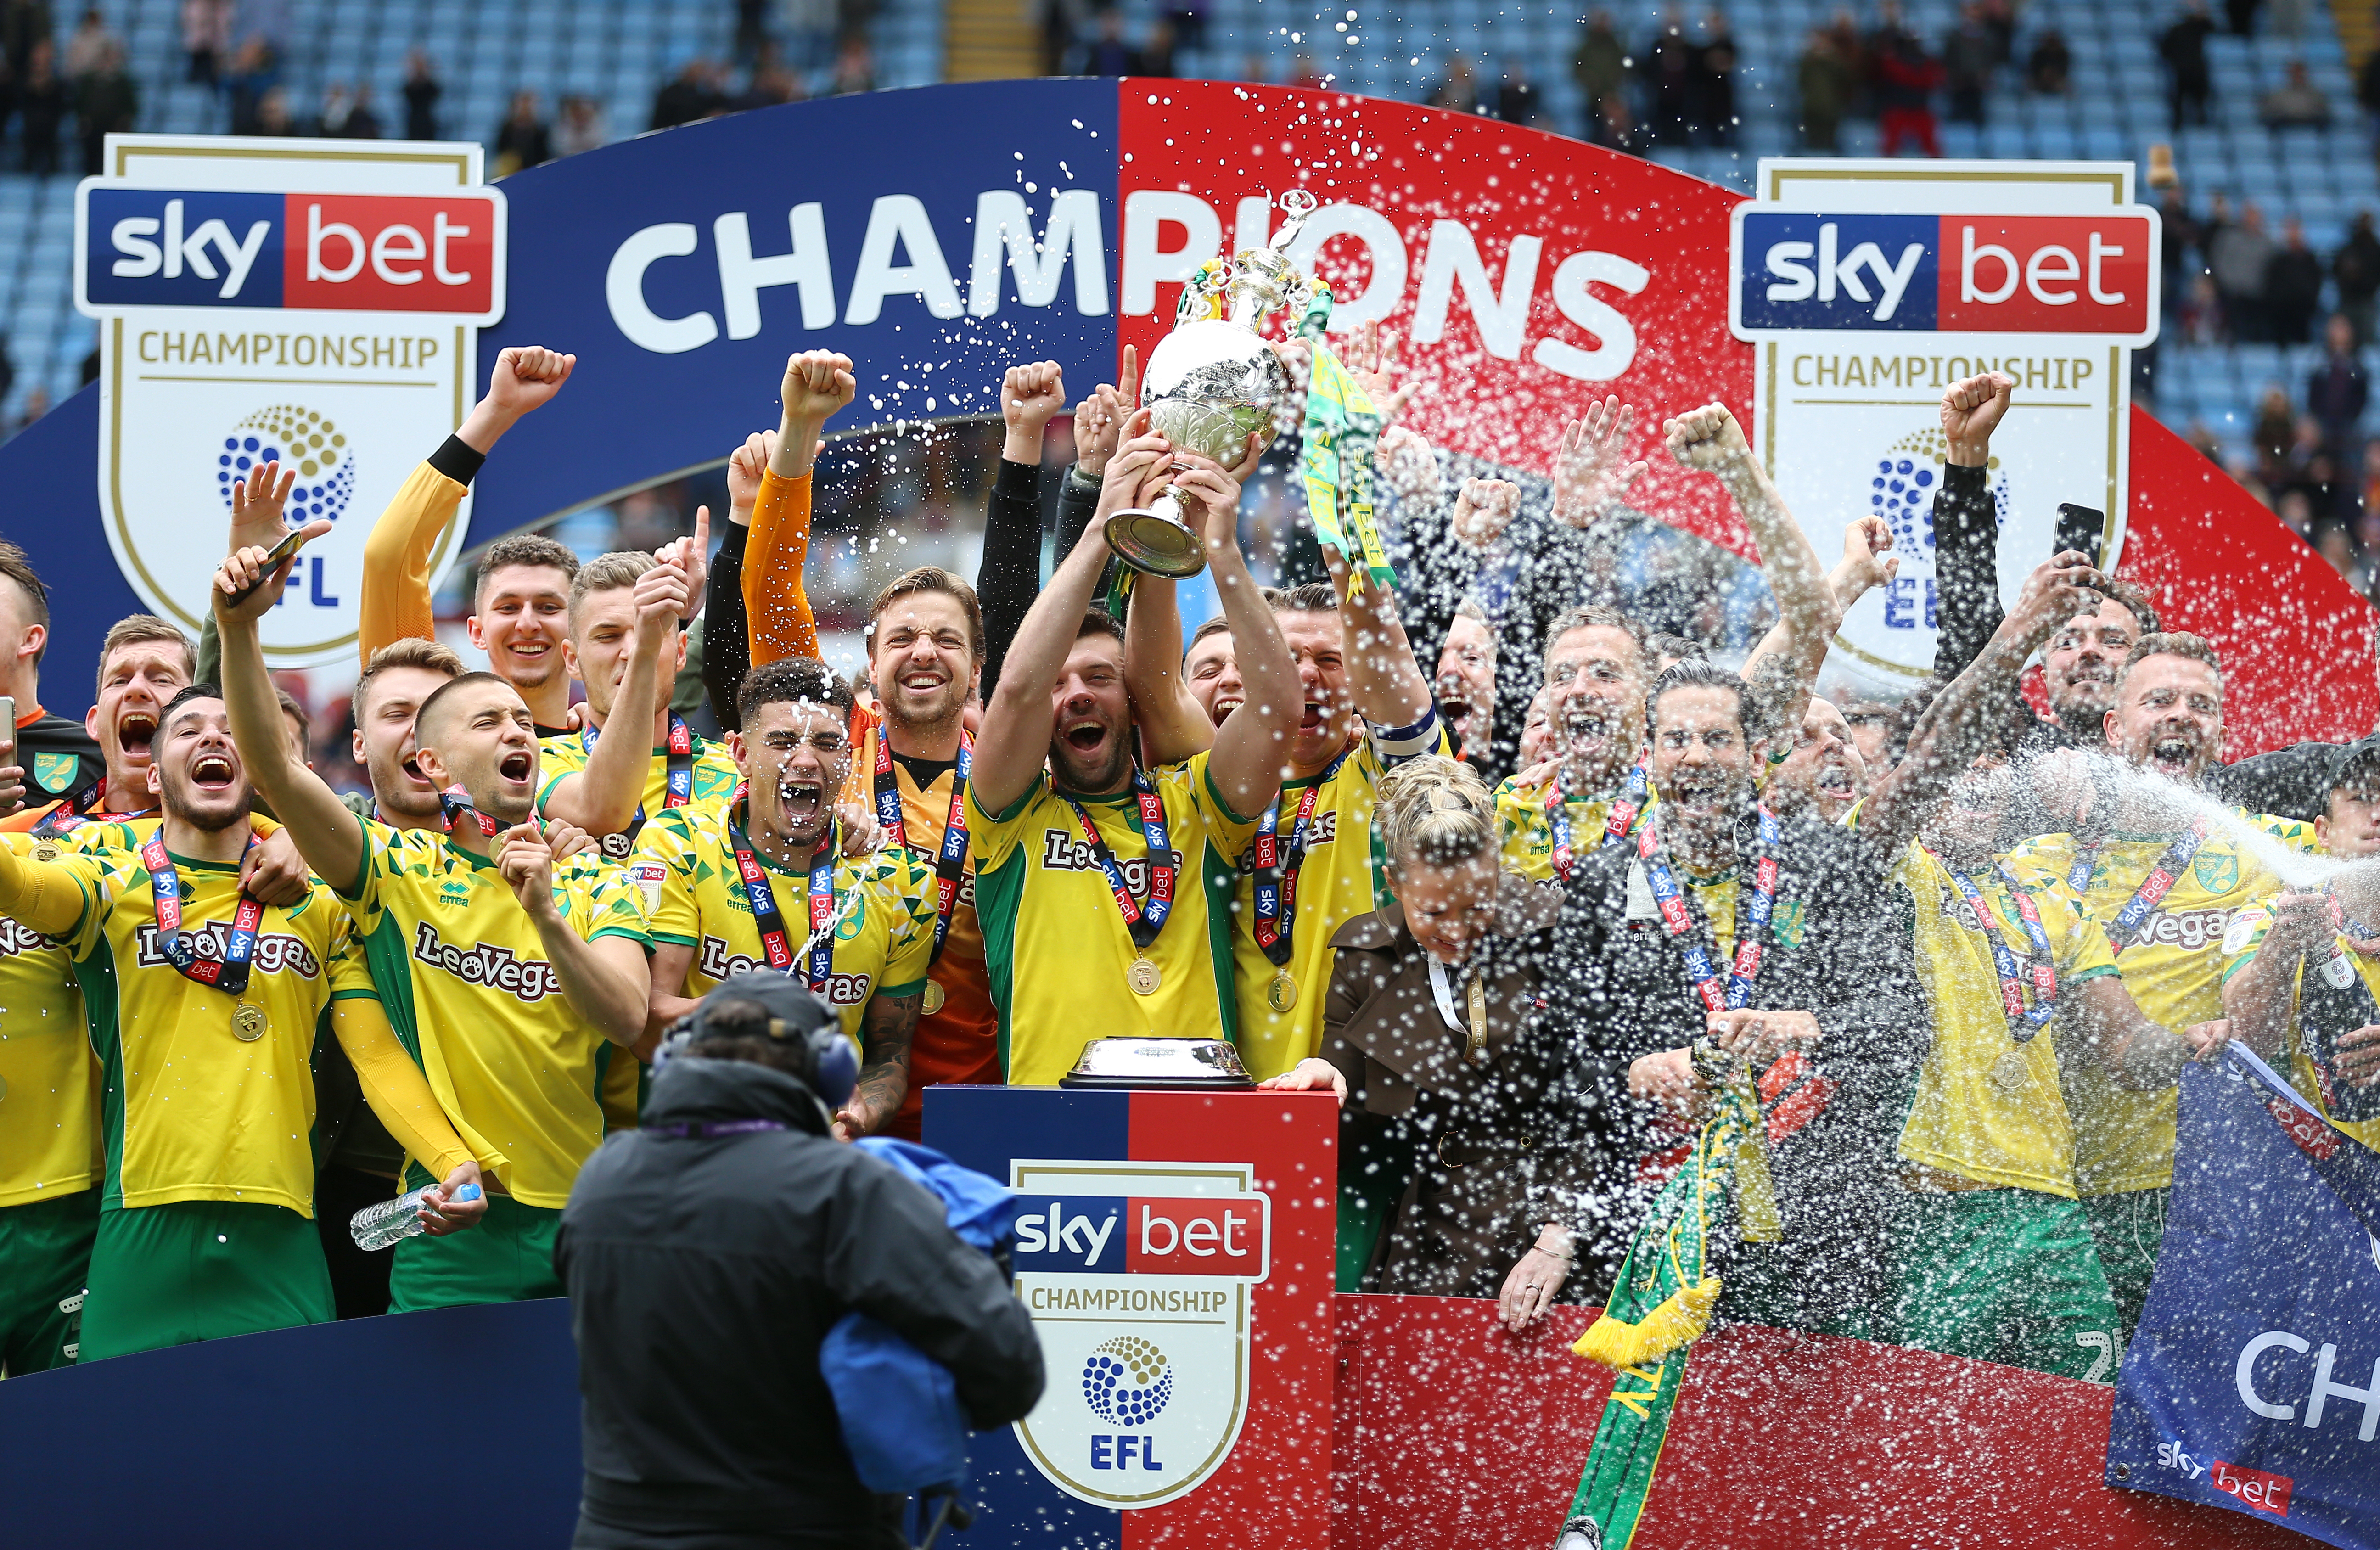 From champions to relegation for Norwich? Image: PA Images